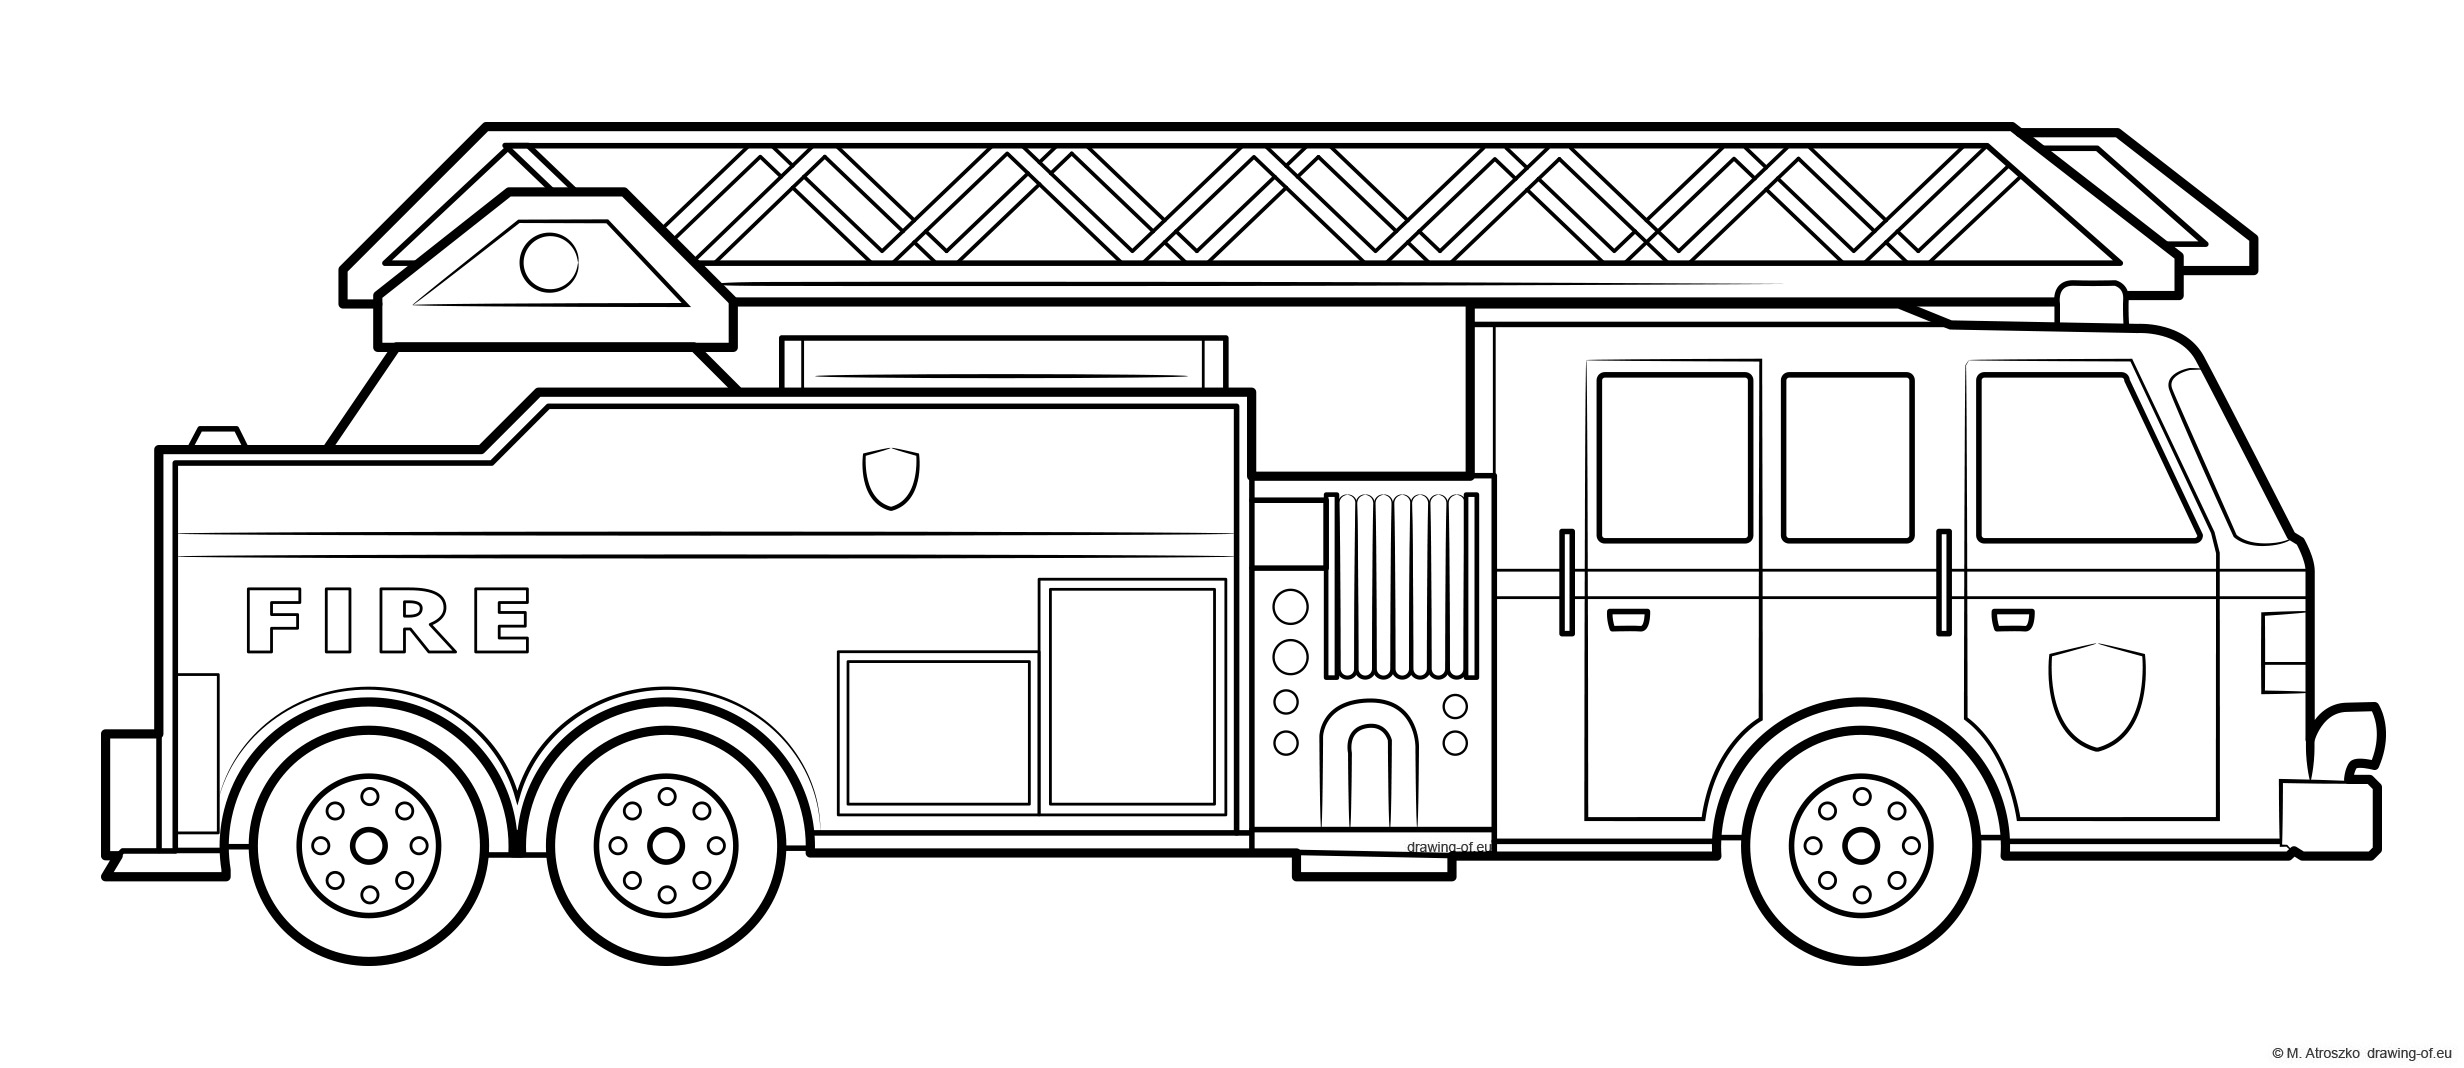 American fire truck coloring page - draw